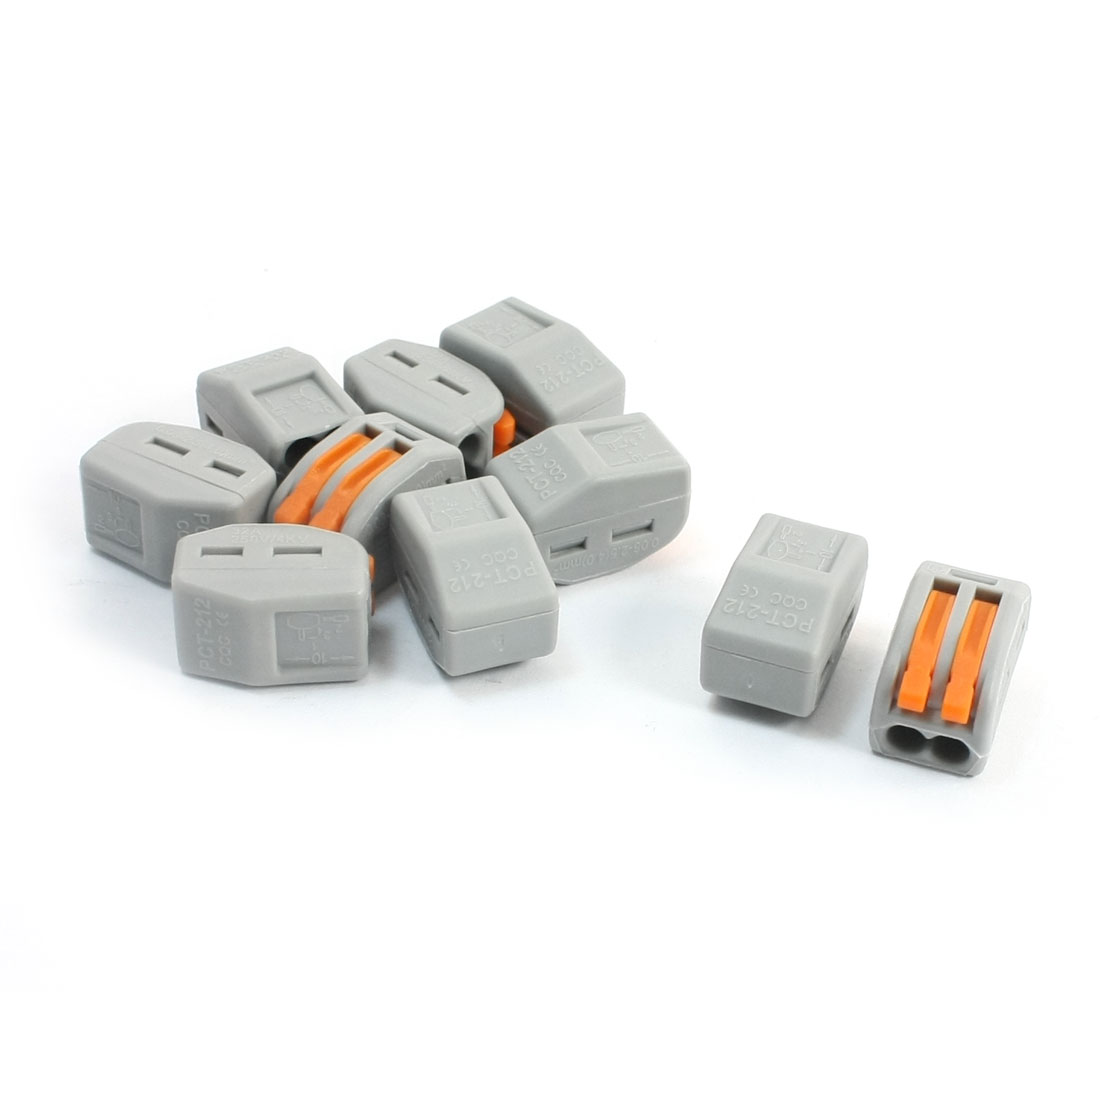 10-Pcs-2-Wire-Connect-Lever-Clamp-Lock-Terminal-Block-AC-250V-32A